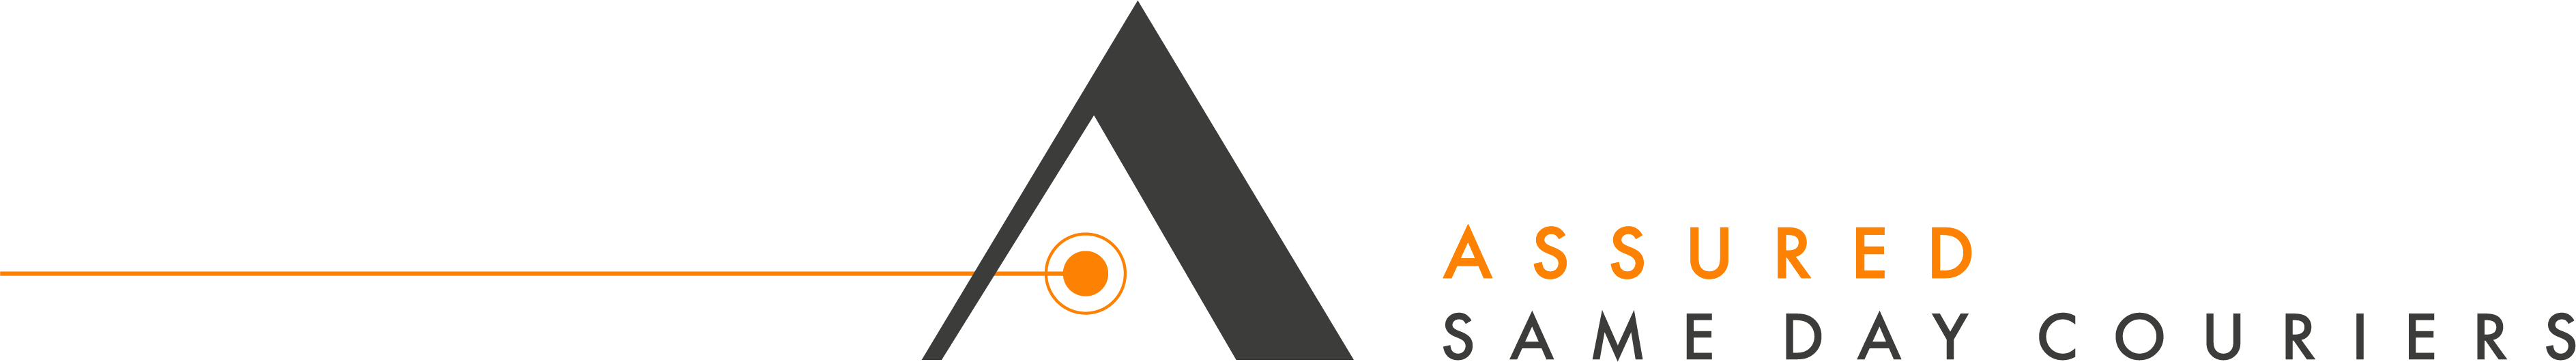 Assured Same Day Couriers Logo